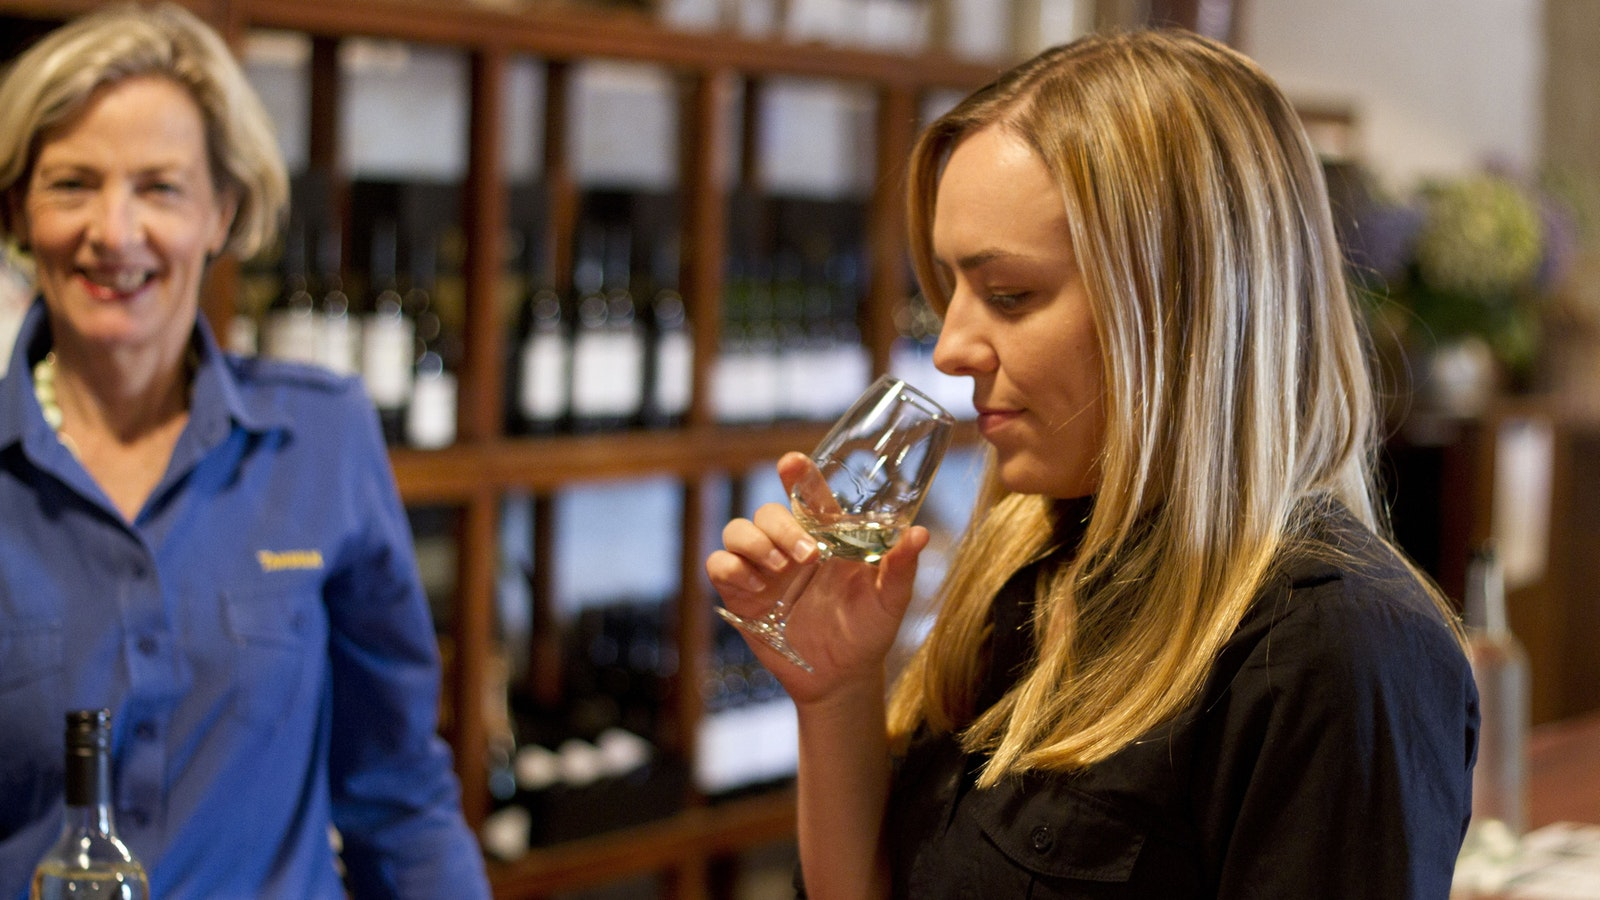 Tasting wines at Cellar Door